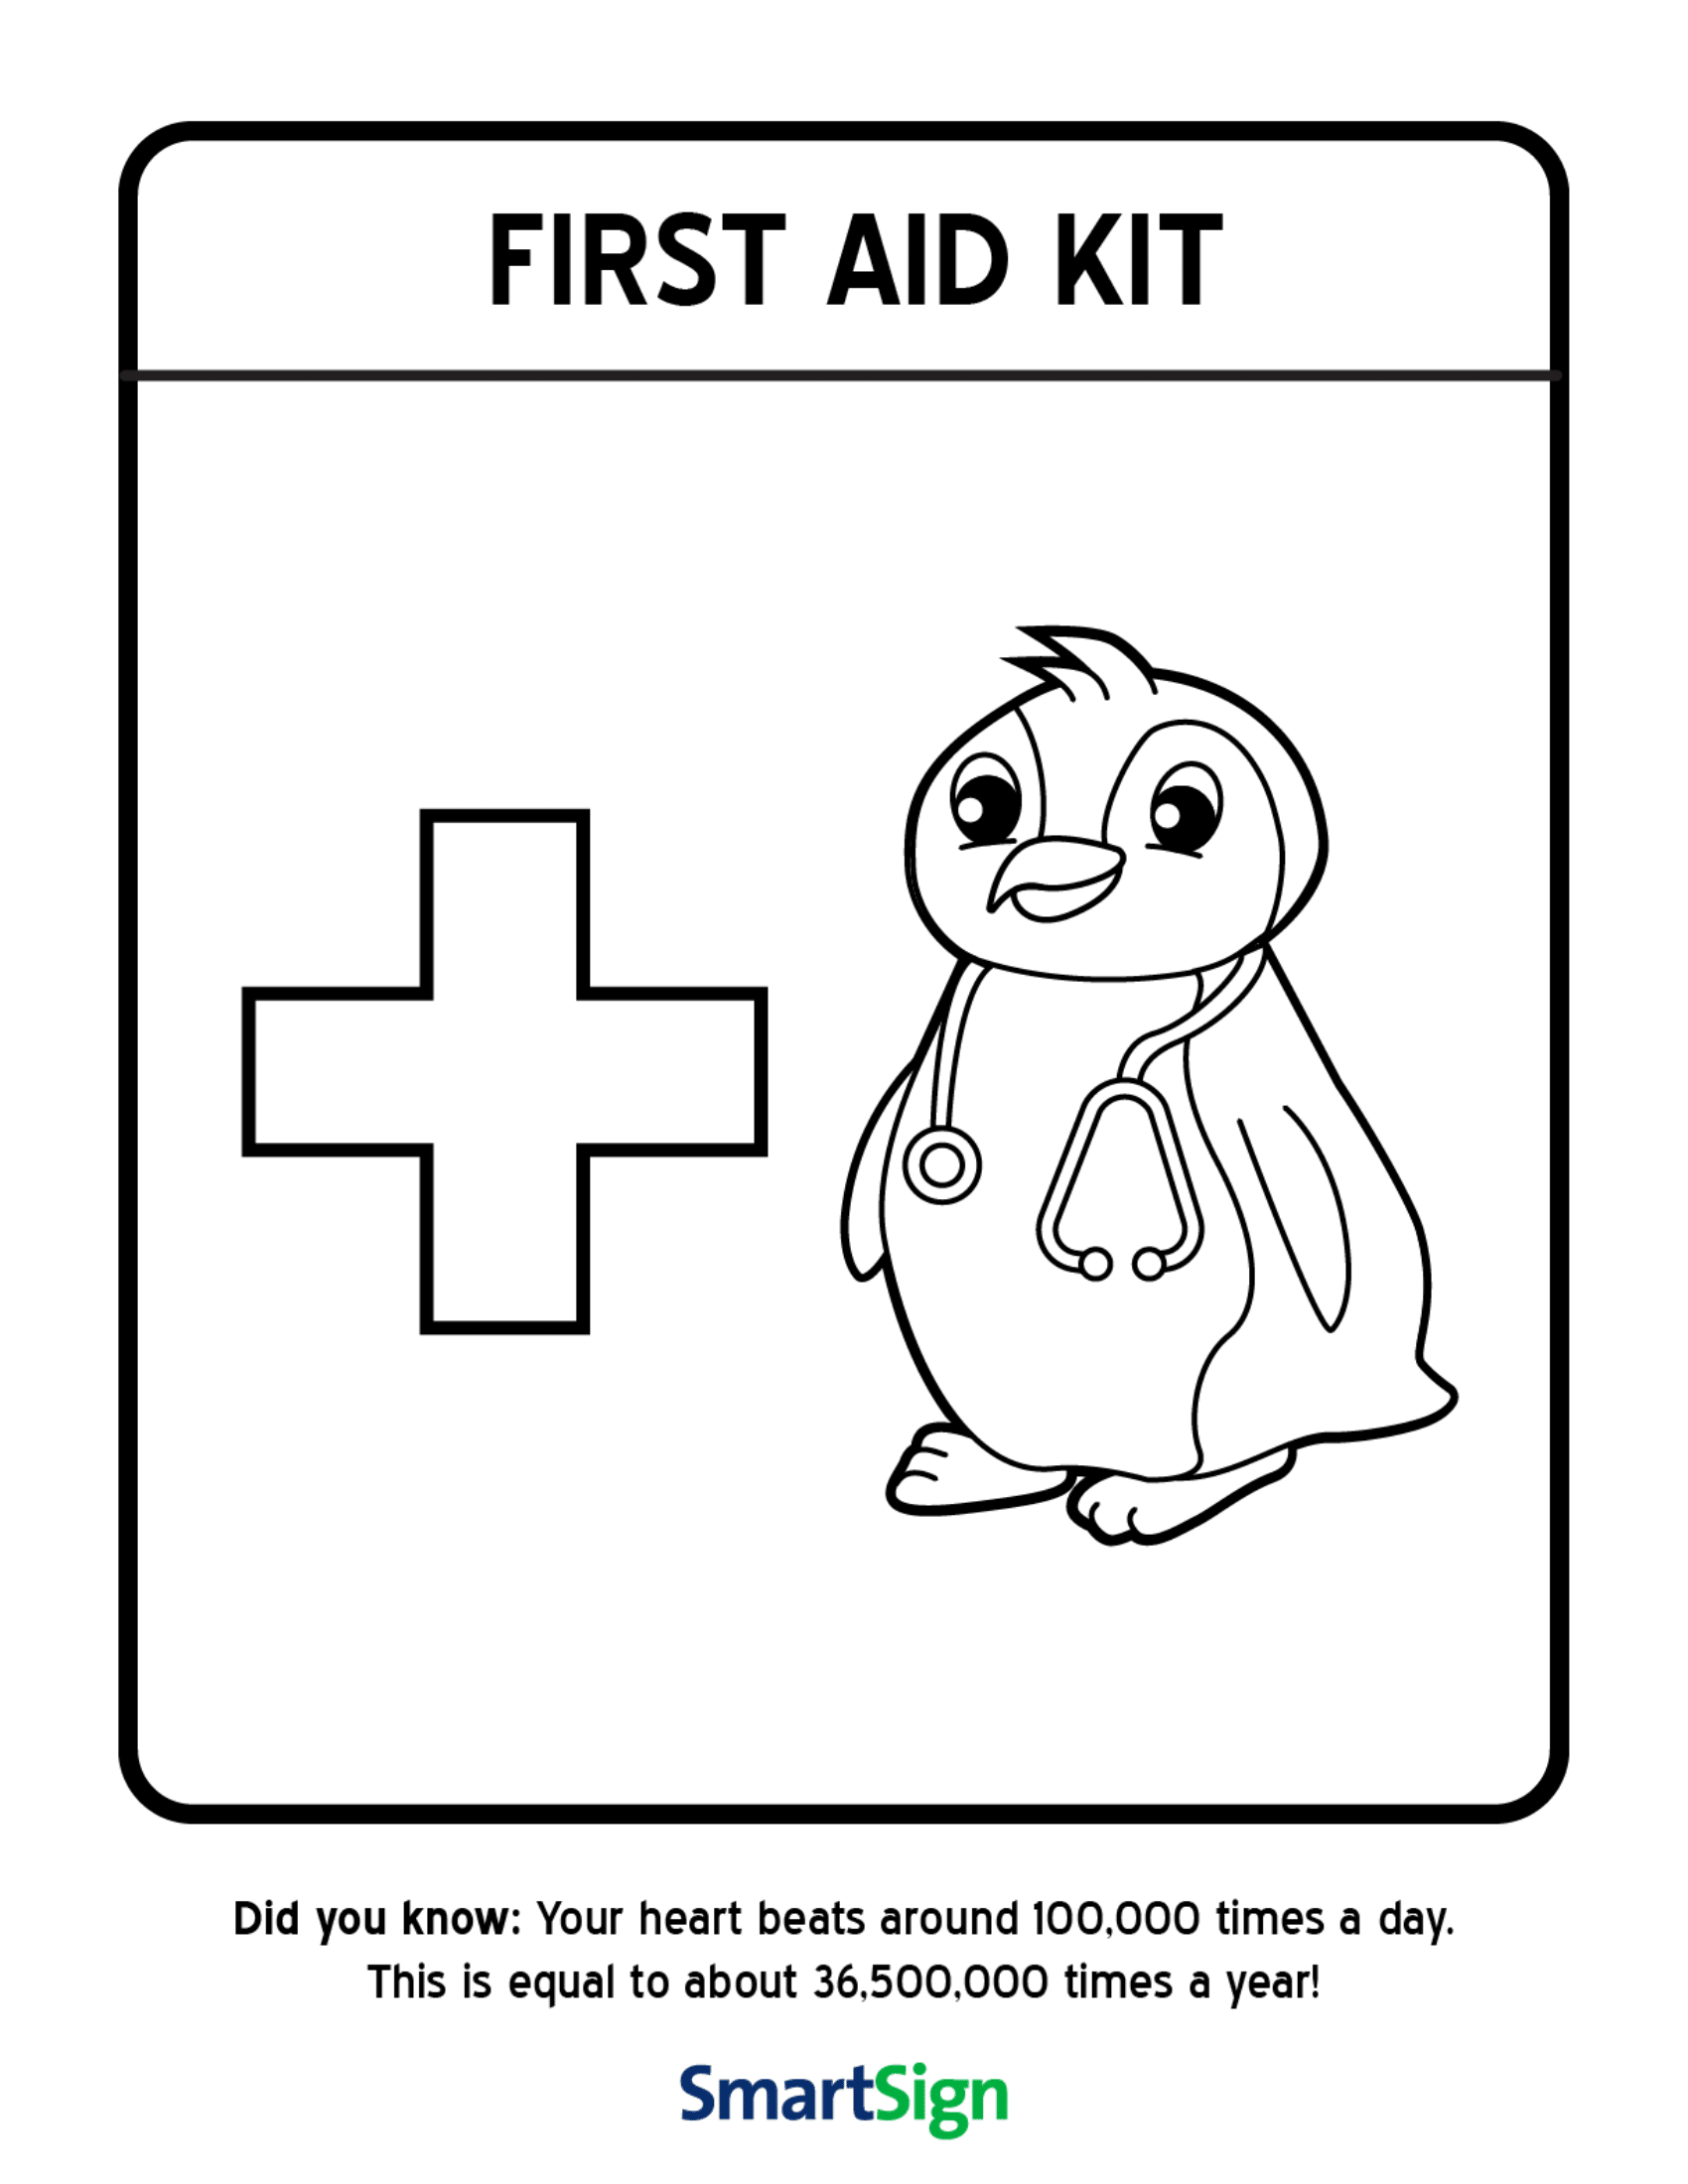 image relating to First Aid Printable known as Basic safety Coloring Printable for Little ones - Initial Help Package